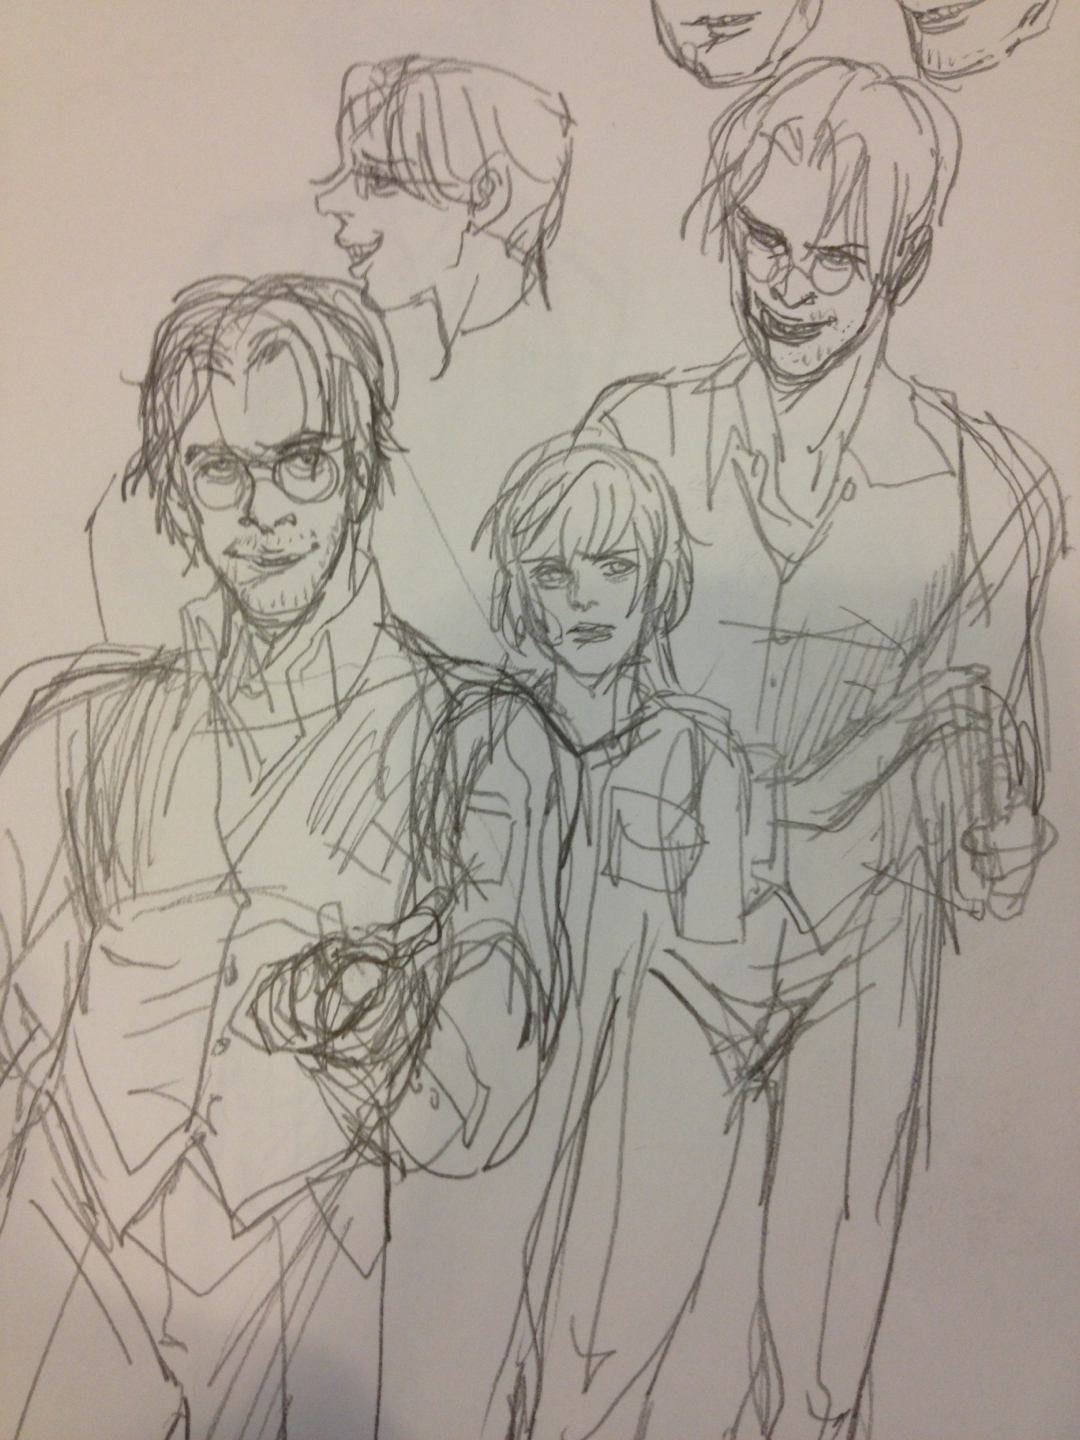 Forgot I drew this. Some gross vincents from SH3